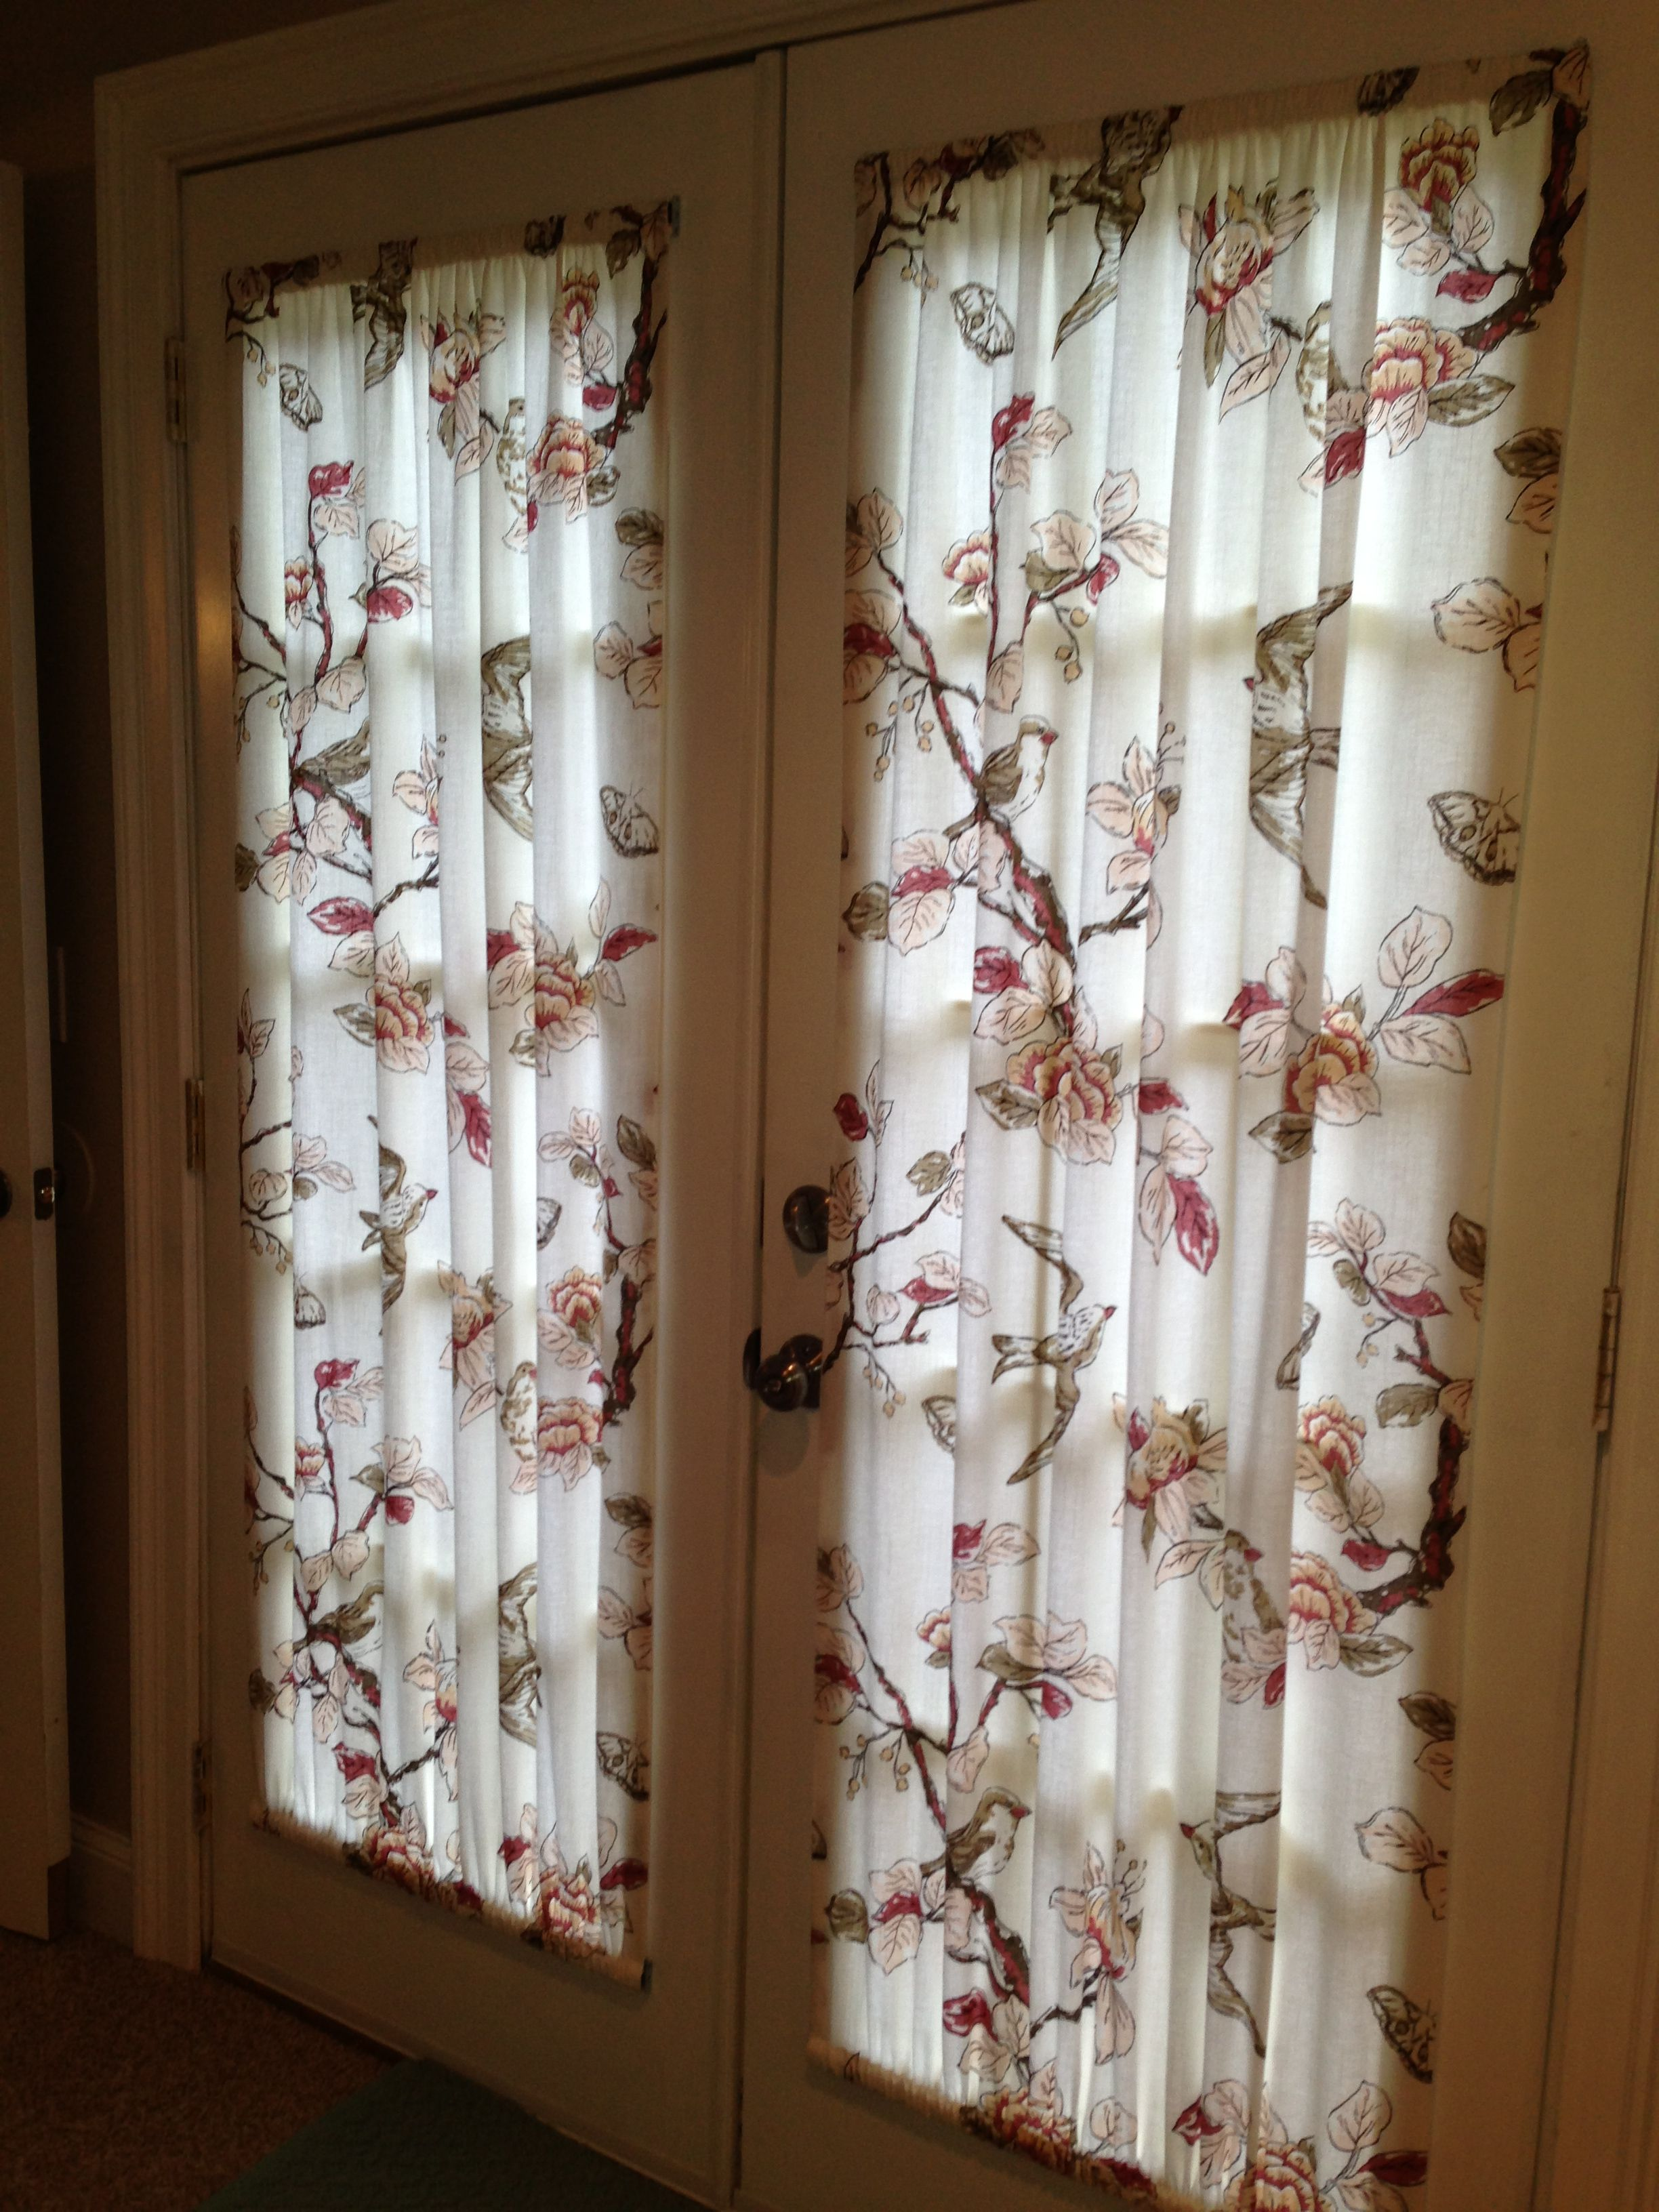 Le Meilleur French Door Curtains Made From A 19 00 Target Shower Ce Mois Ci